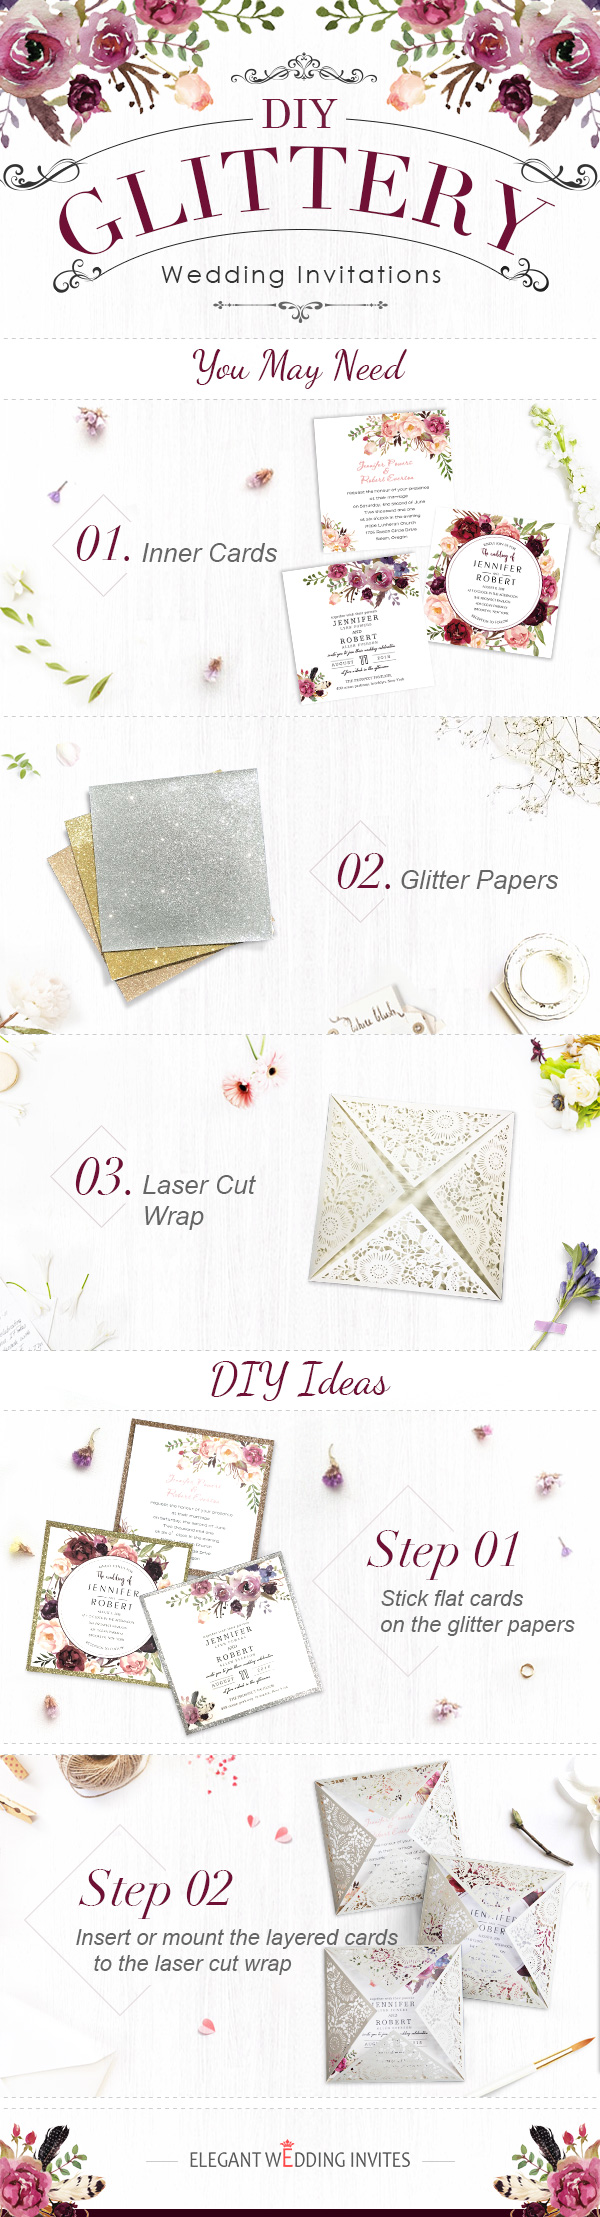 DIY glittery wedding invitations